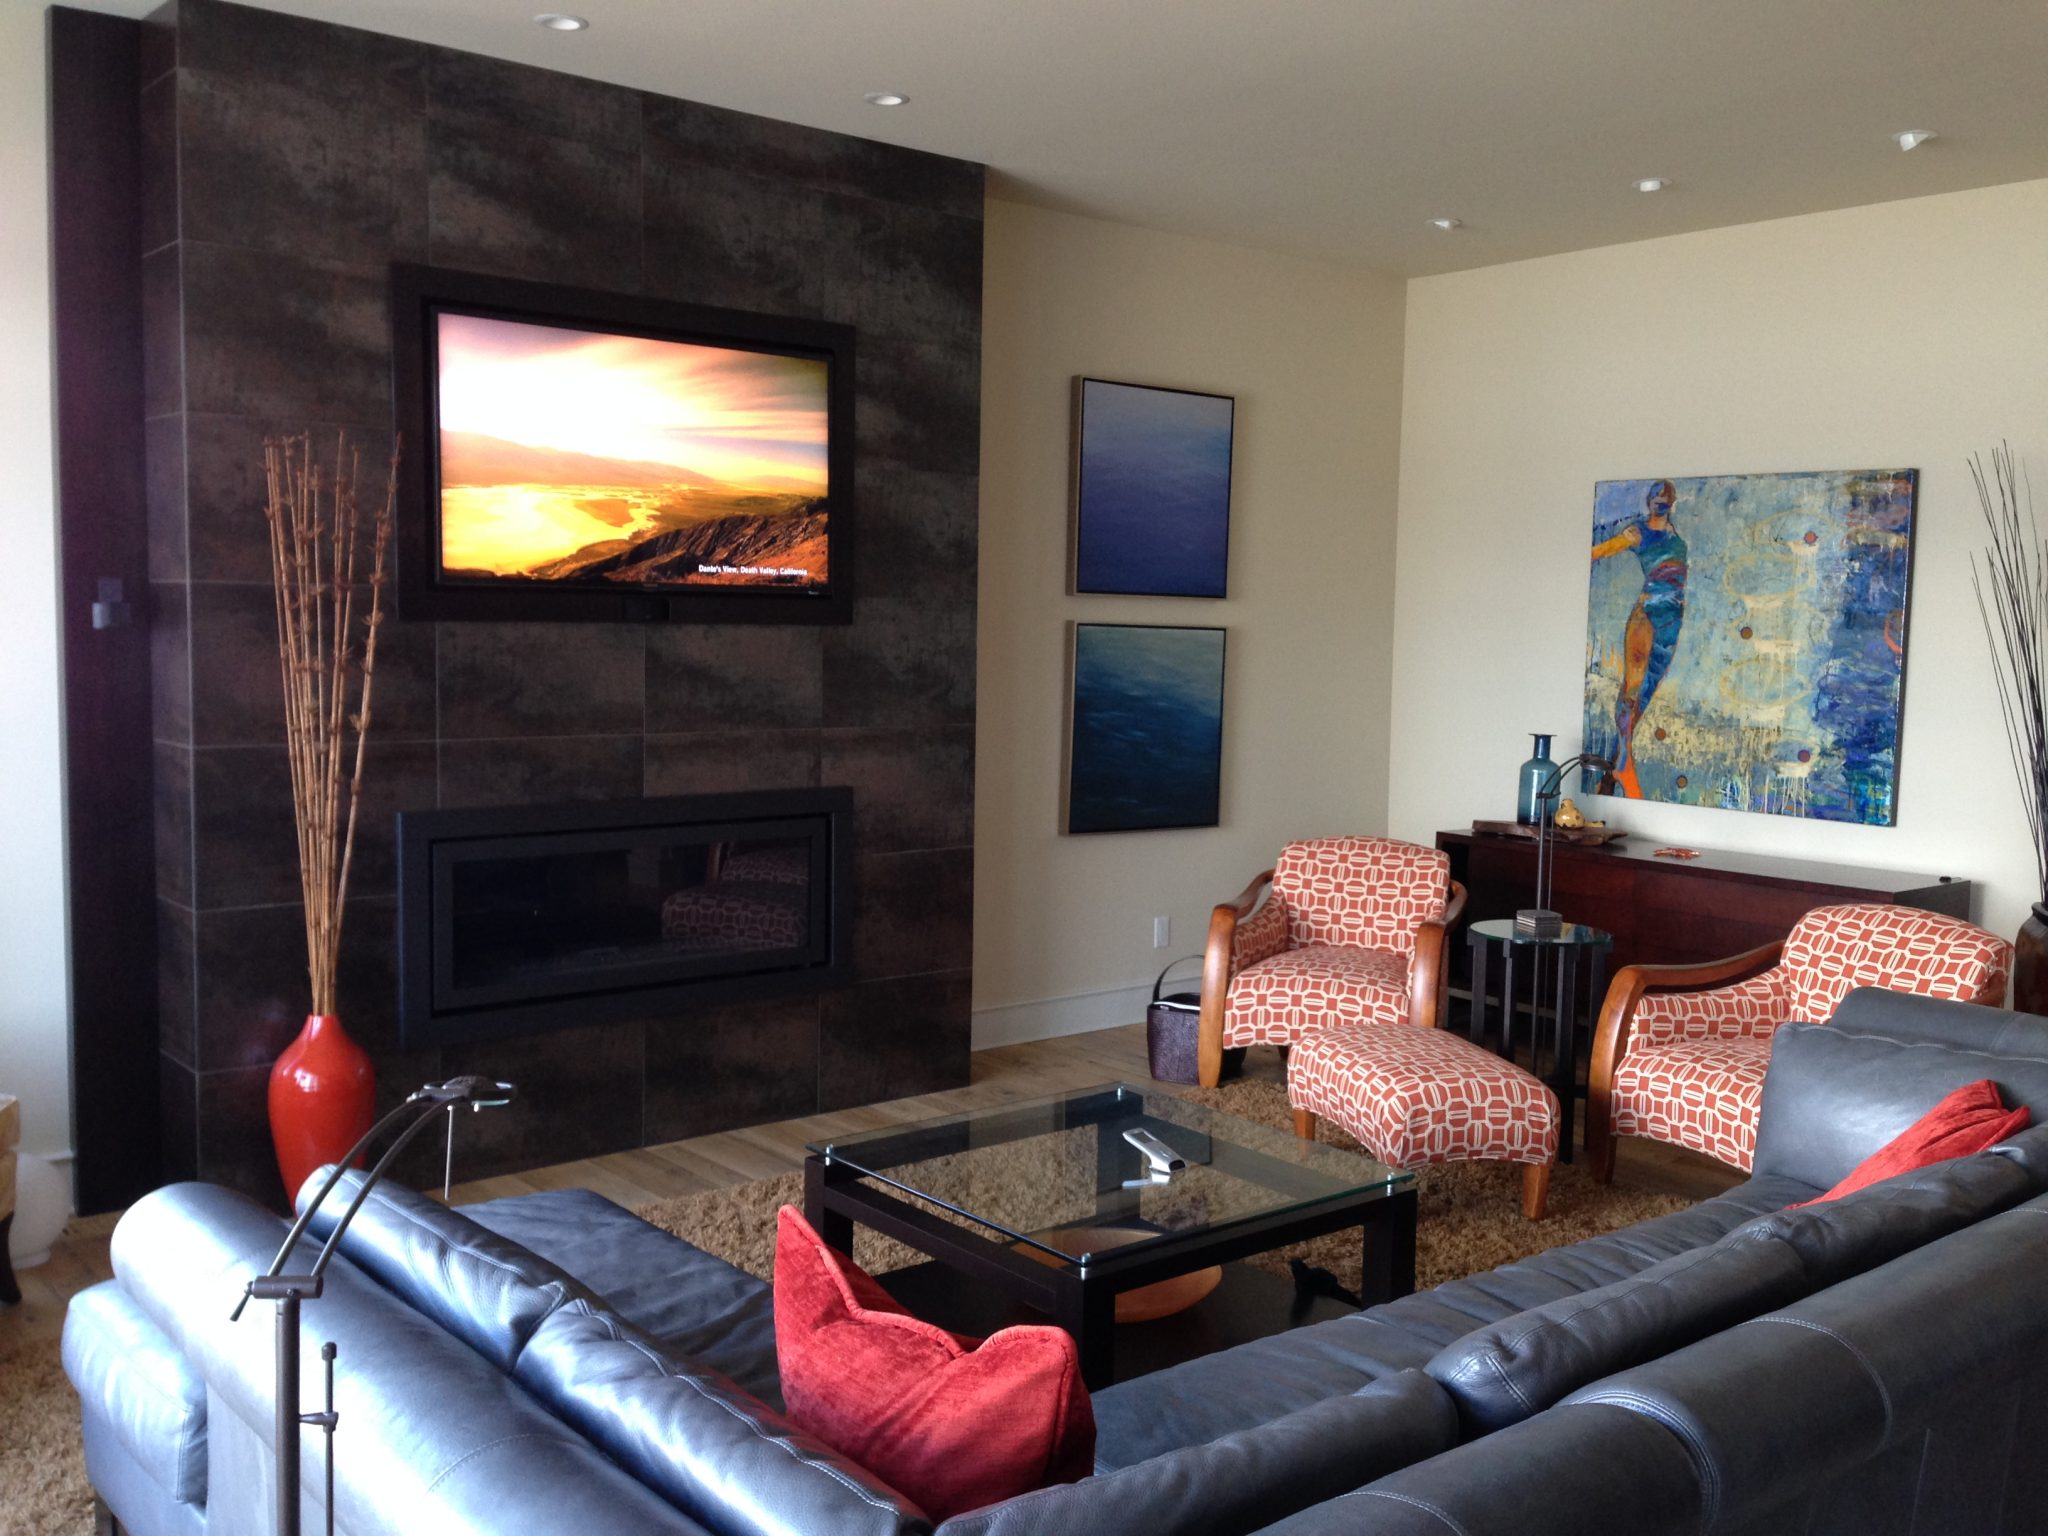 Interior design kelowna fireplace living room re for Designing interiors inc